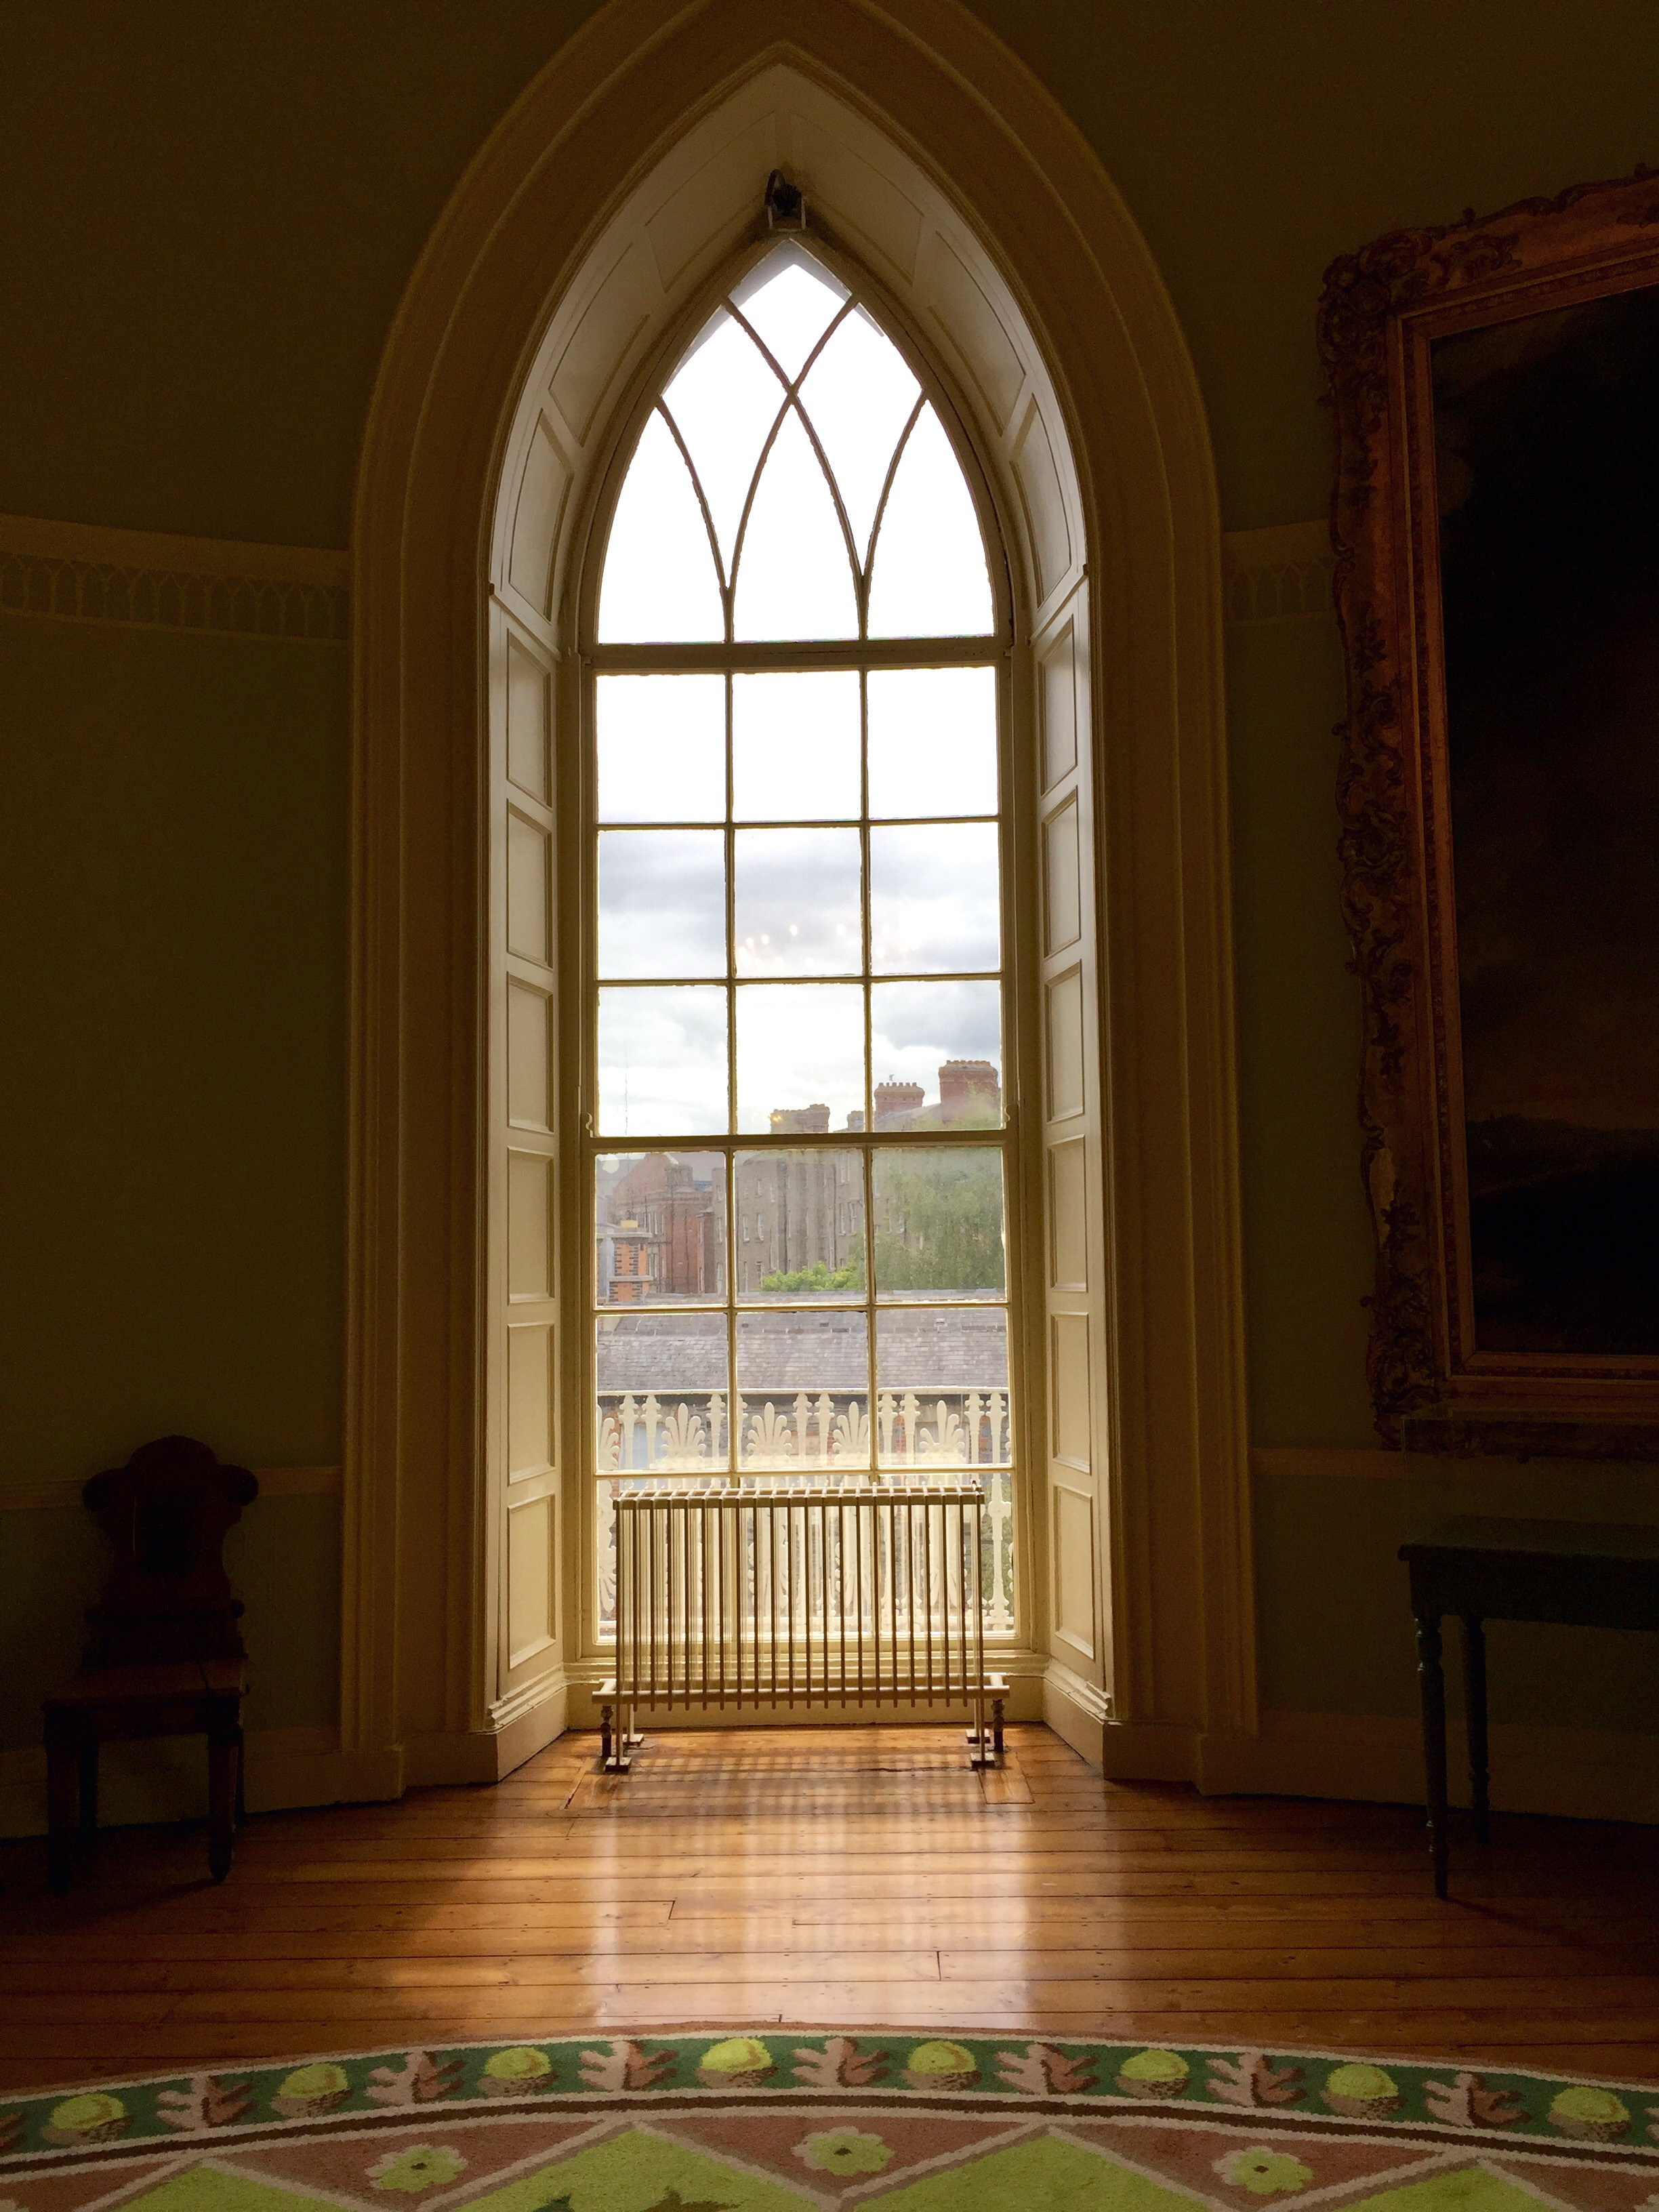 Window in one of the state rooms that looked out onto the garden.